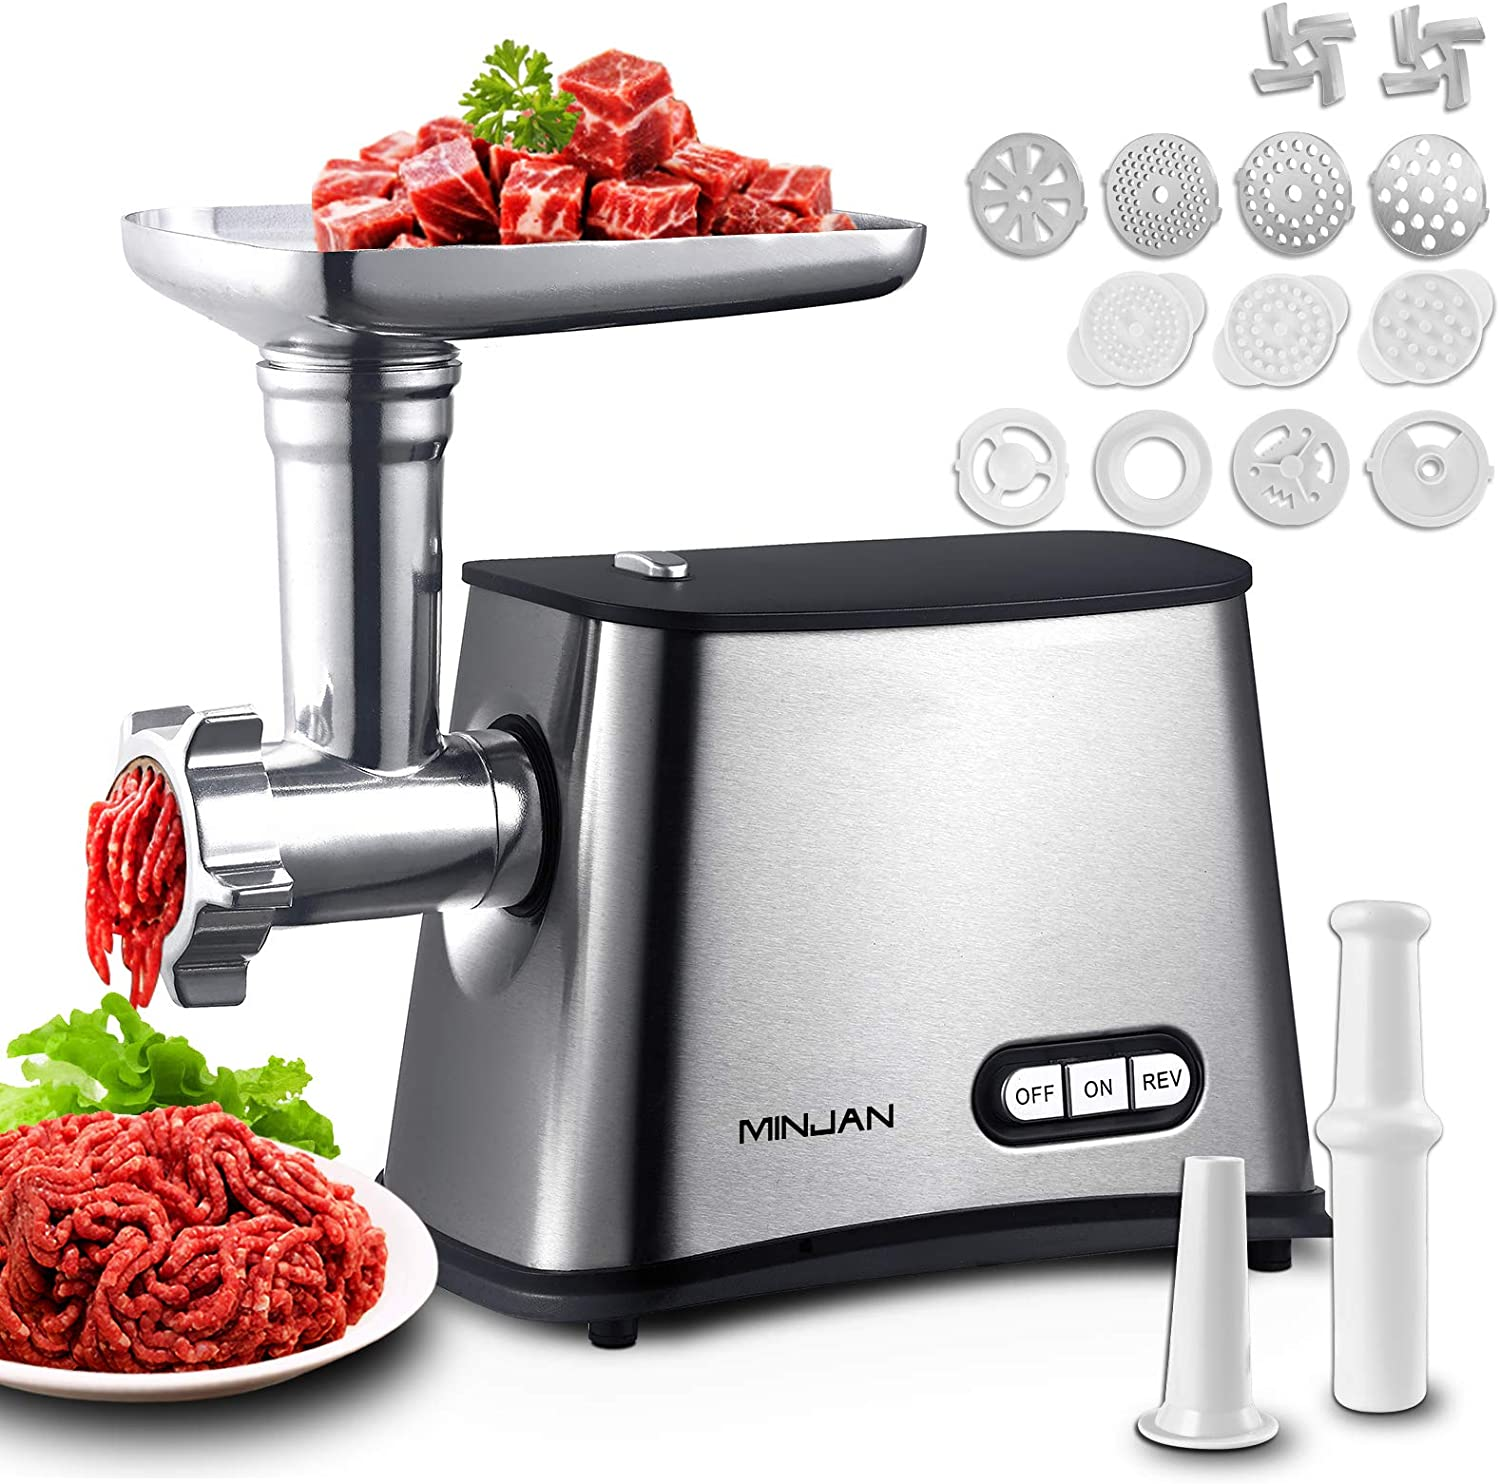 N/N Electric Meat Grinder 1200W Max Stainless Steel Meat Mincer & Sausage Stuffer with Kubbe Kit 2 Stainless Steel Blades 4 Grinding Plates Cookie Maker Cutting Plate Cleaners for Home Use